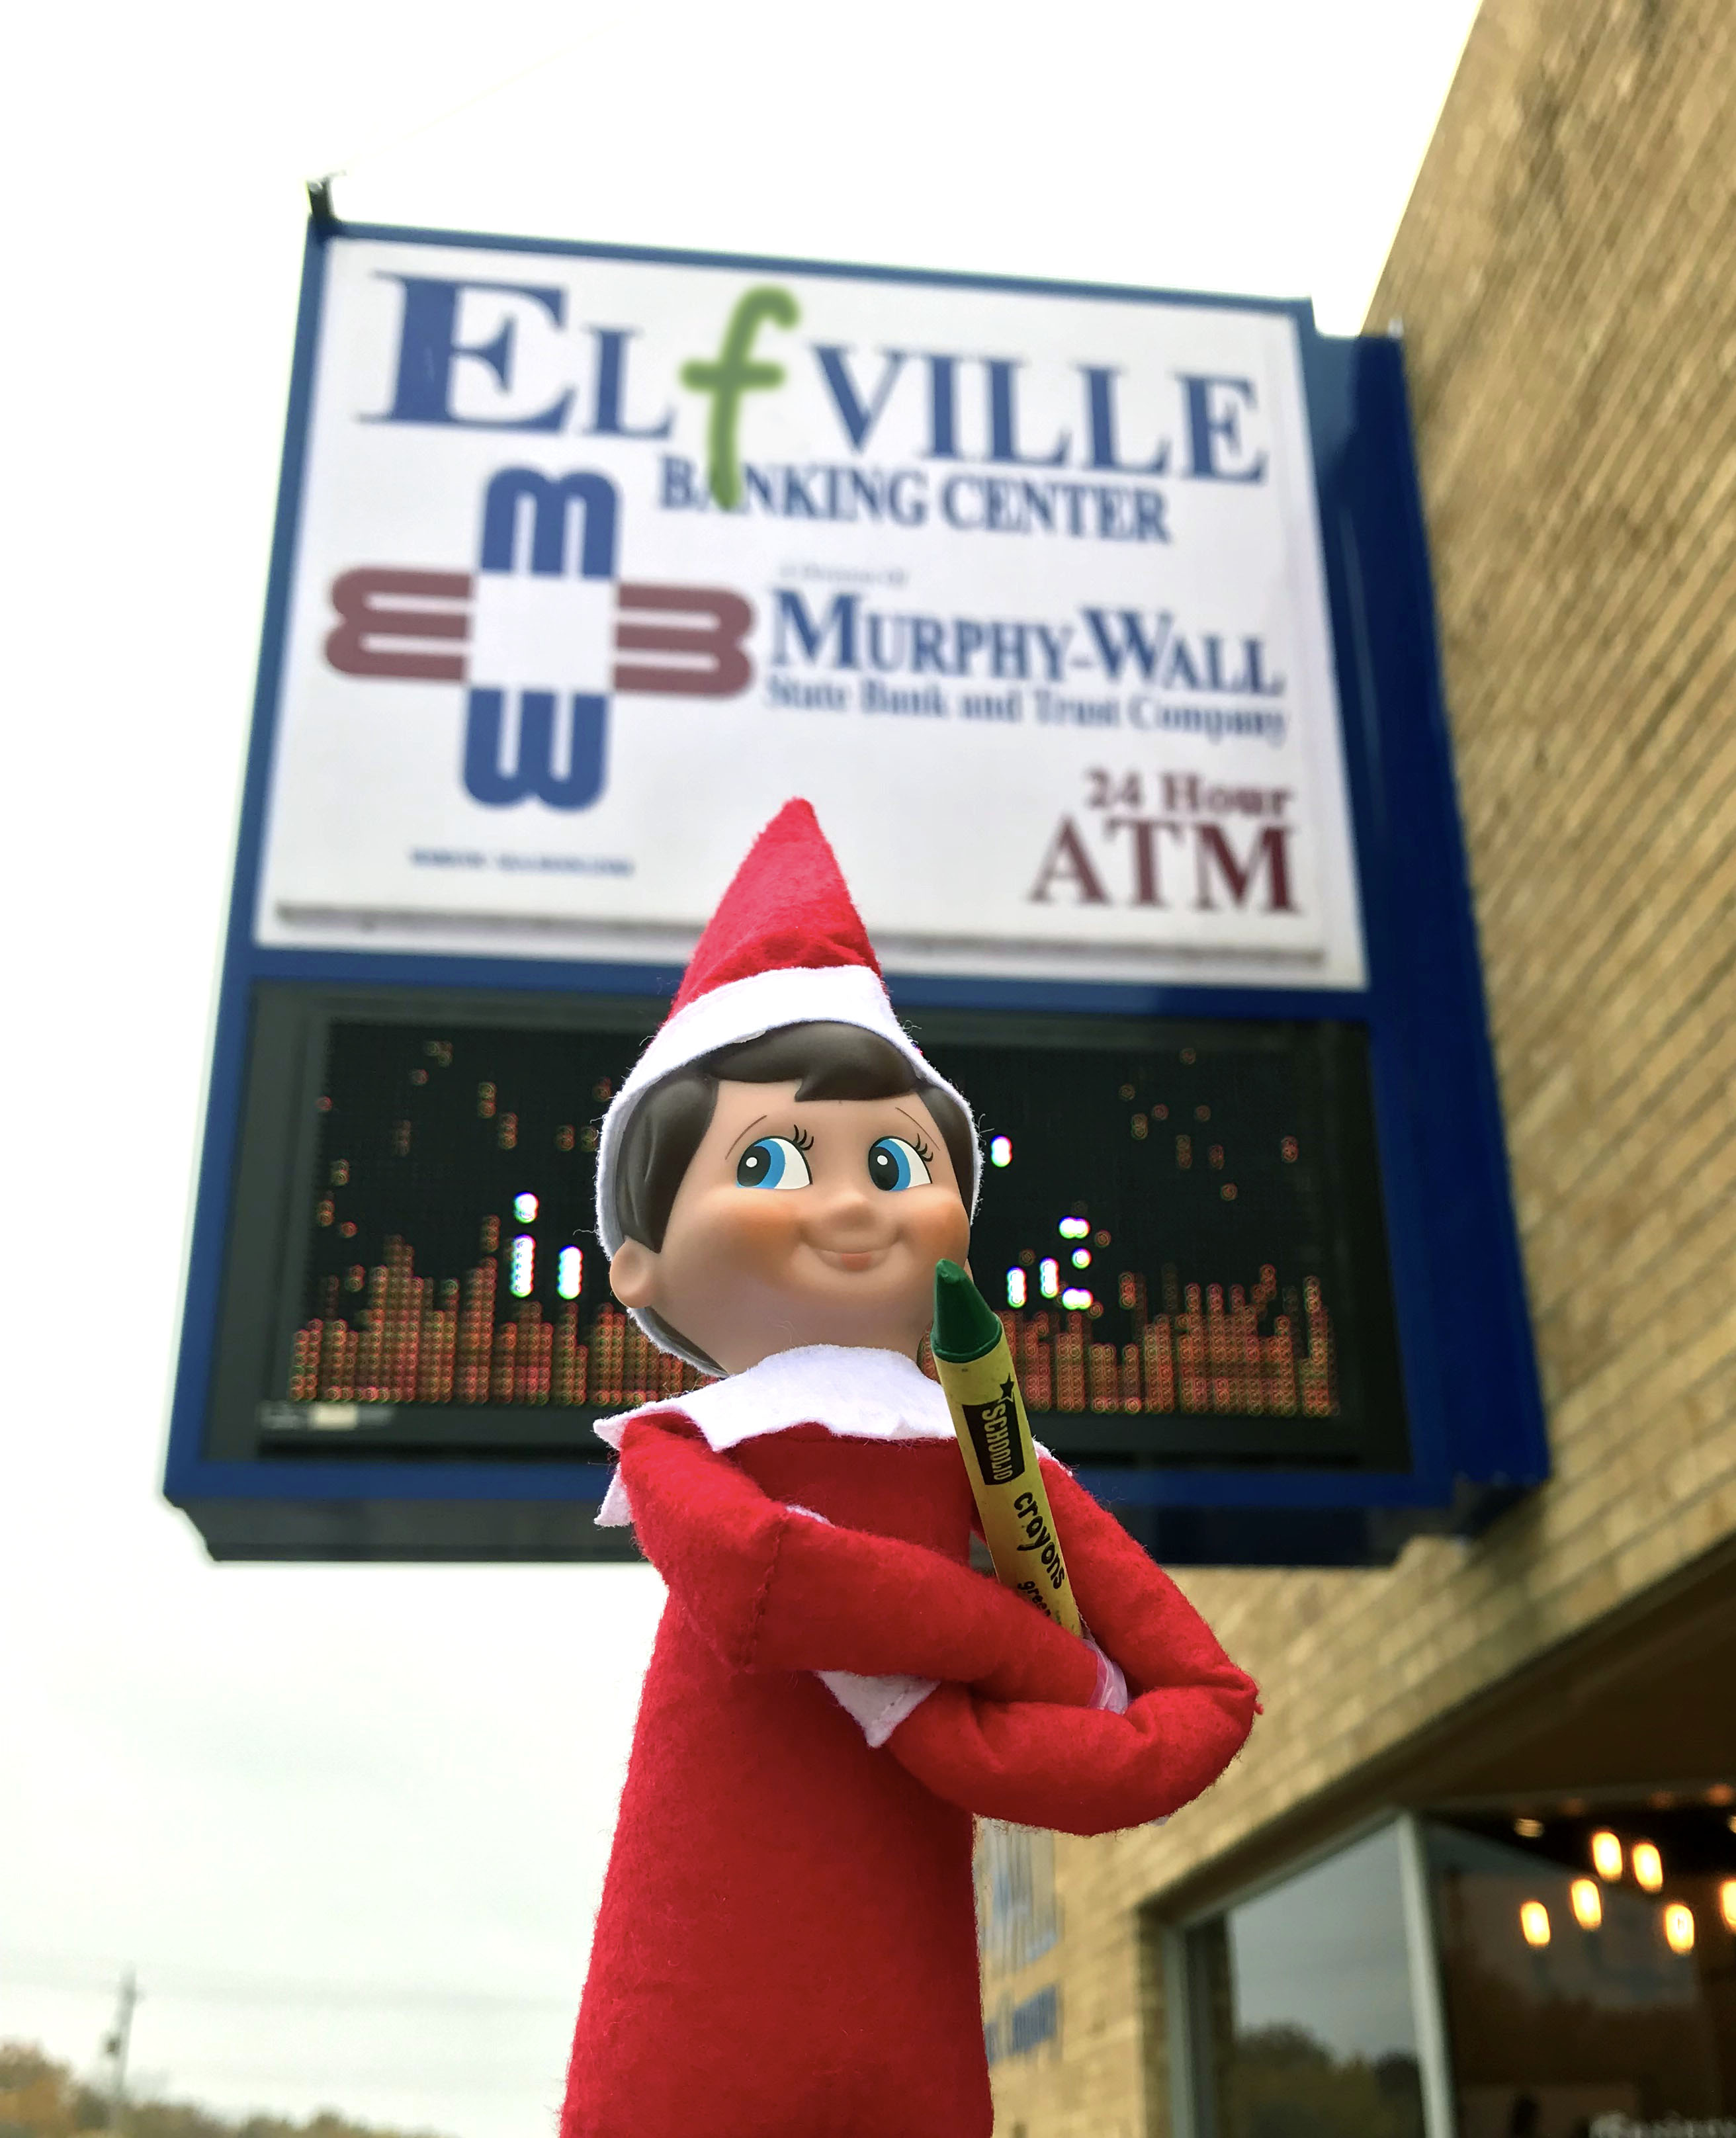 Murph the Elf stands infront of the Elkville banking location after changing the sign to